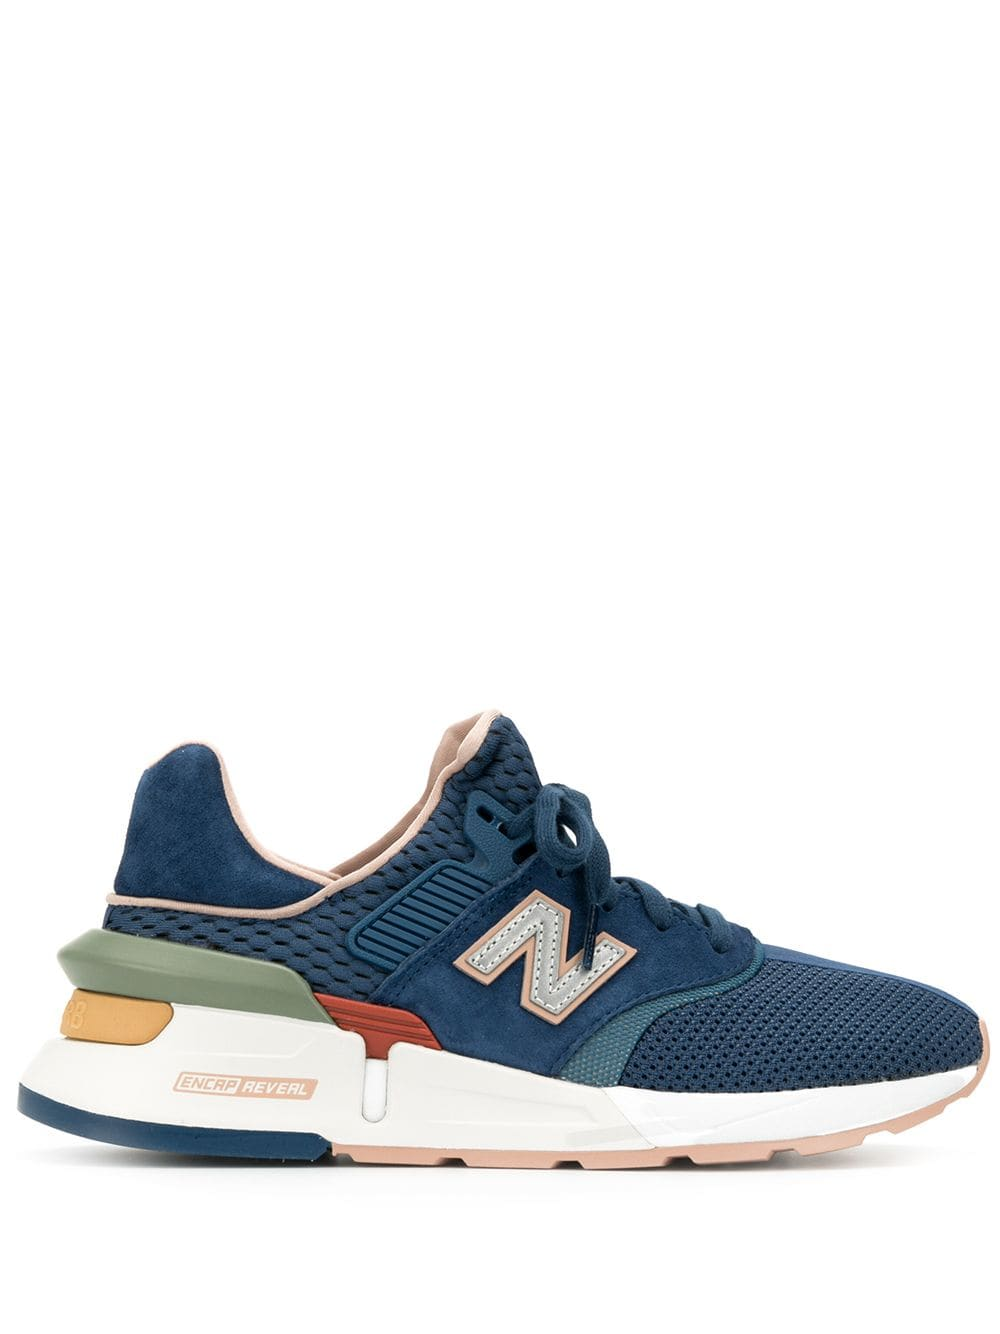 New Balance 997 sneakers Blue New balance, Spring